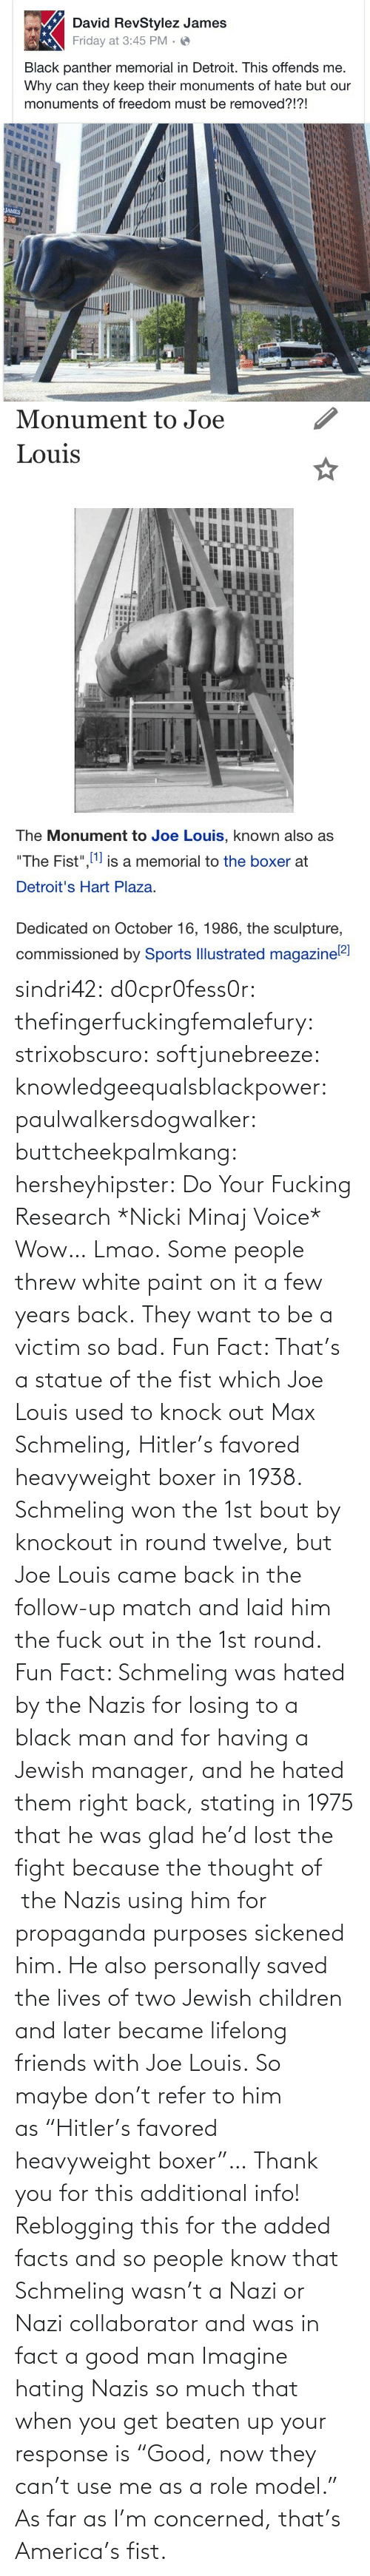 "them: sindri42:  d0cpr0fess0r:  thefingerfuckingfemalefury:  strixobscuro:  softjunebreeze:  knowledgeequalsblackpower:  paulwalkersdogwalker:   buttcheekpalmkang:   hersheyhipster:  Do Your Fucking Research *Nicki Minaj Voice*    Wow… Lmao.   Some people threw white paint on it a few years back.   They want to be a victim so bad.  Fun Fact: That's a statue of the fist which Joe Louis used to knock out Max Schmeling, Hitler's favored heavyweight boxer in 1938. Schmeling won the 1st bout by knockout in round twelve, but Joe Louis came back in the follow-up match and laid him the fuck out in the 1st round.  Fun Fact: Schmeling was hated by the Nazis for losing to a black man and for having a Jewish manager, and he hated them right back, stating in 1975 that he was glad he'd lost the fight because the thought of  the Nazis using him for propaganda purposes sickened him. He also personally saved the lives of two Jewish children and later became lifelong friends with Joe Louis. So maybe don't refer to him as ""Hitler's favored heavyweight boxer""…  Thank you for this additional info! Reblogging this for the added facts and so people know that Schmeling wasn't a Nazi or Nazi collaborator and was in fact a good man   Imagine hating Nazis so much that when you get beaten up your response is ""Good, now they can't use me as a role model.""  As far as I'm concerned, that's America's fist."